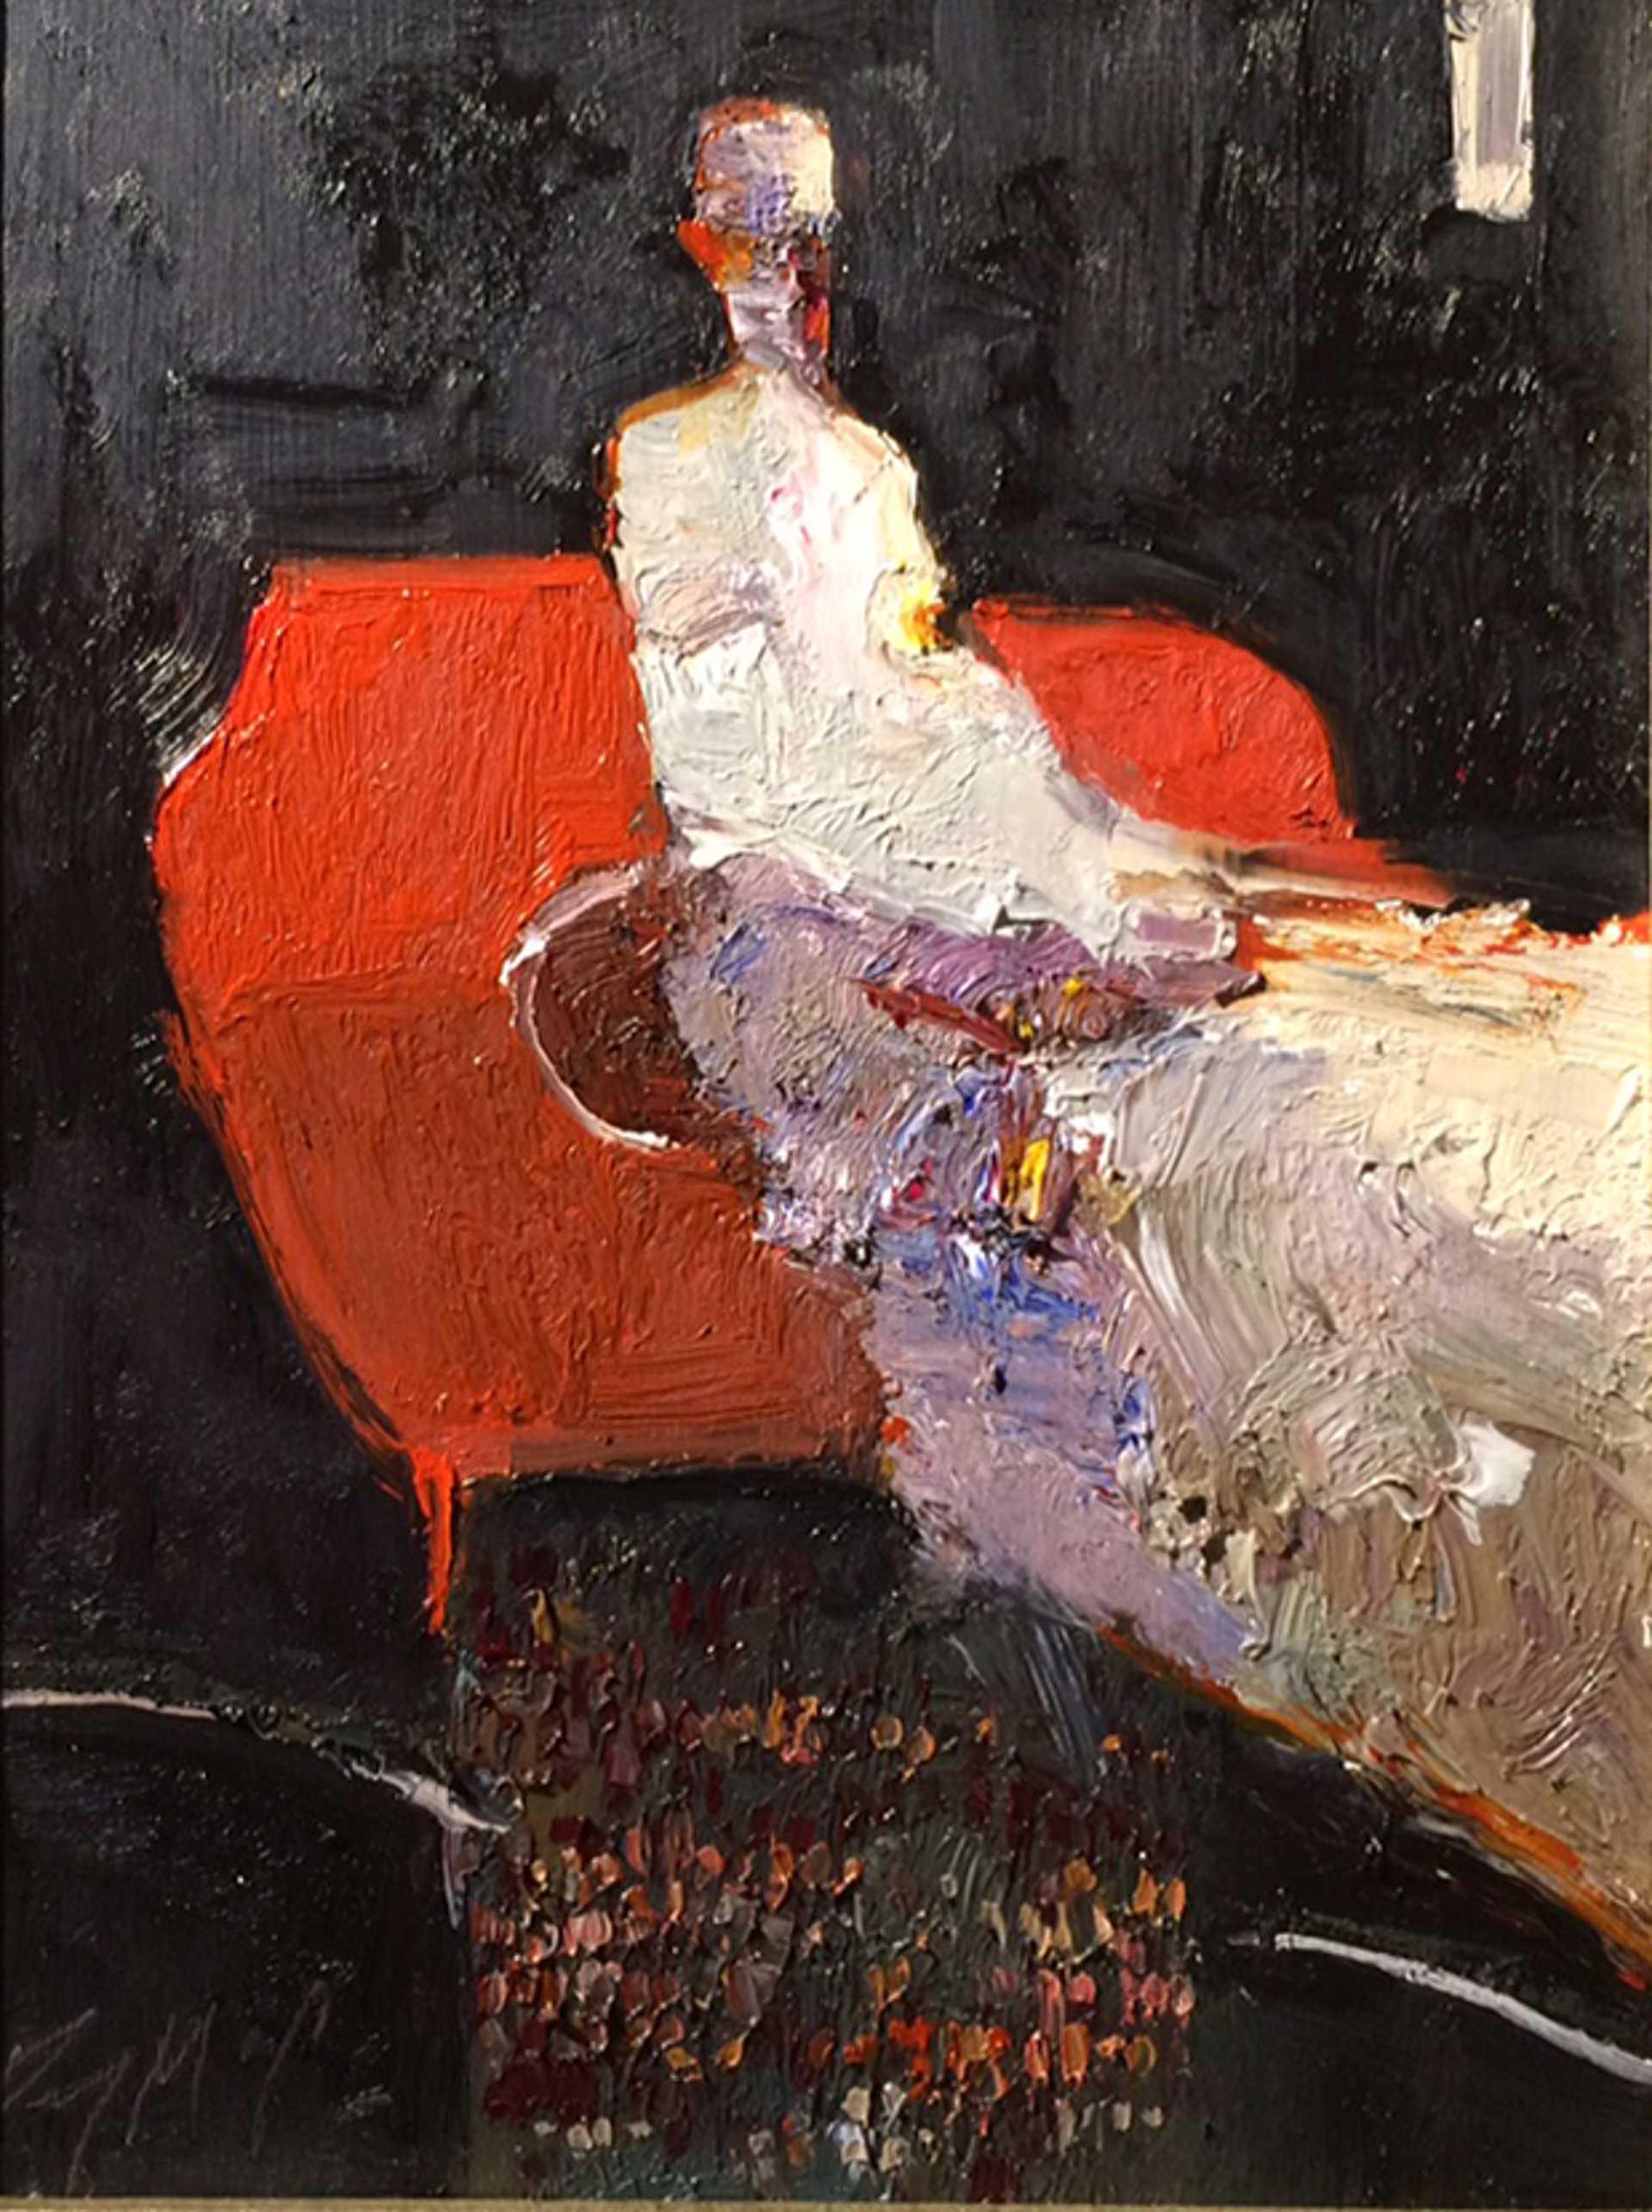 Red Chair by Danny McCaw